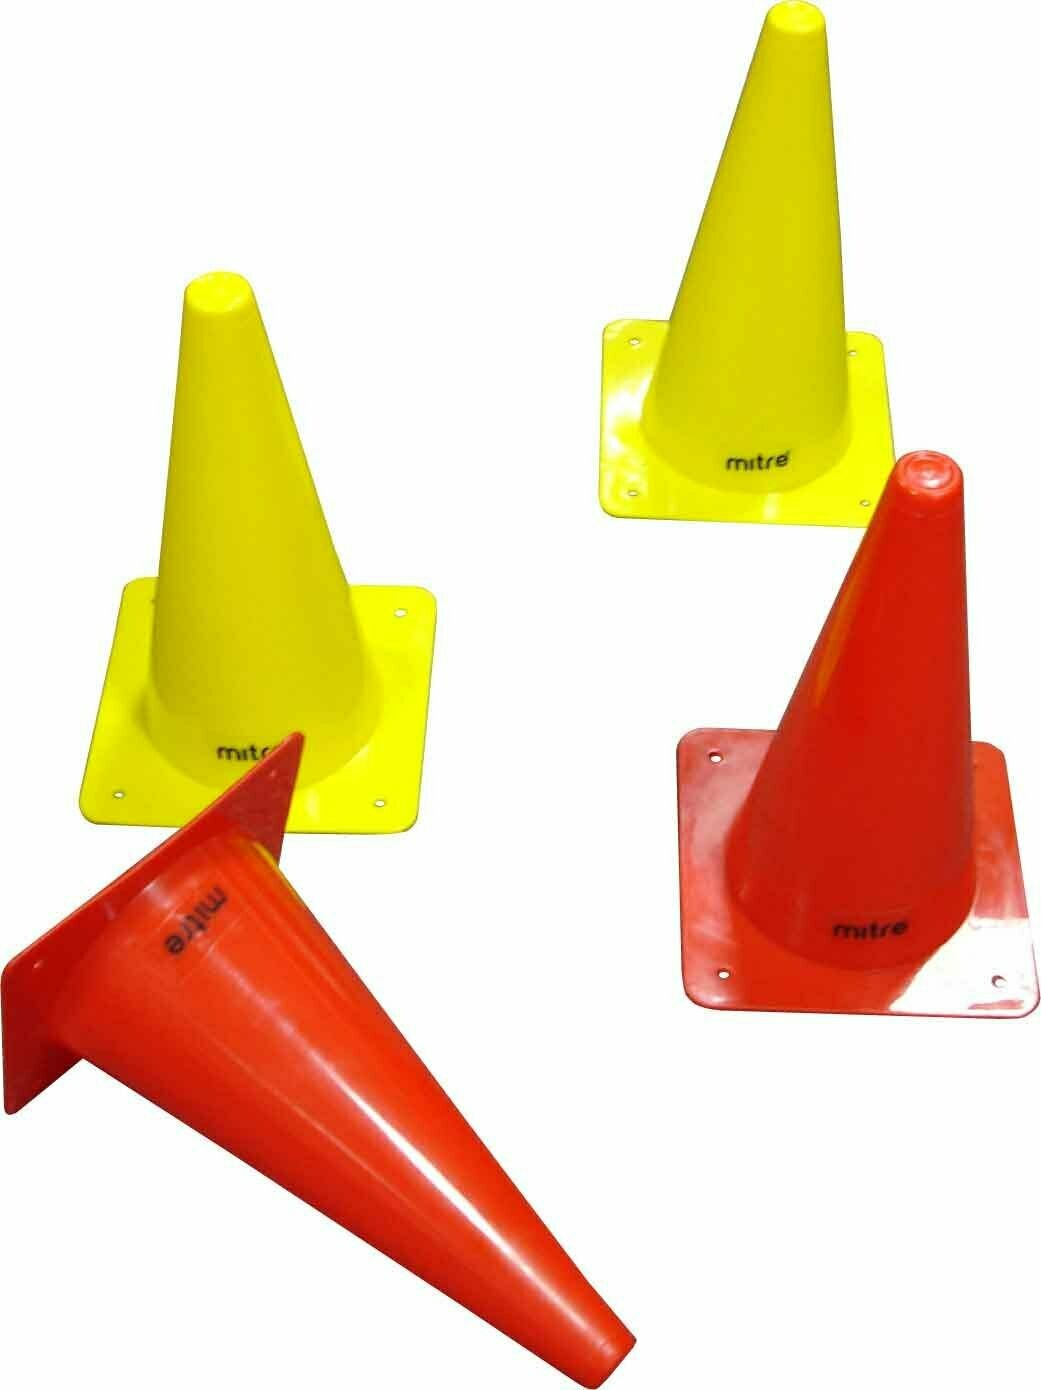 Mitre Safety cone